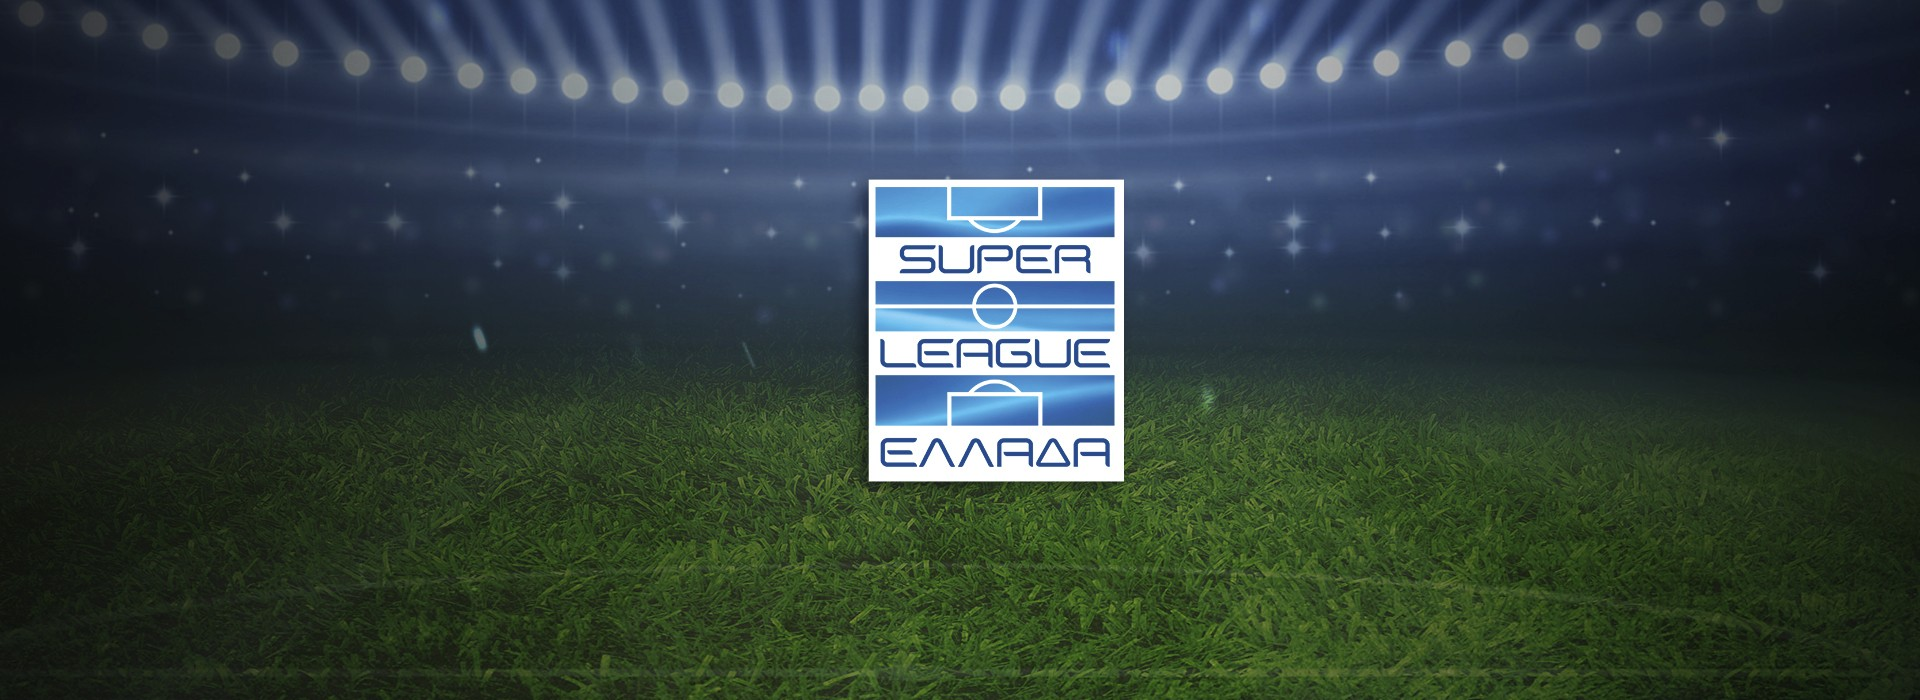 GREEK SOCCER SUPER LEAGUE